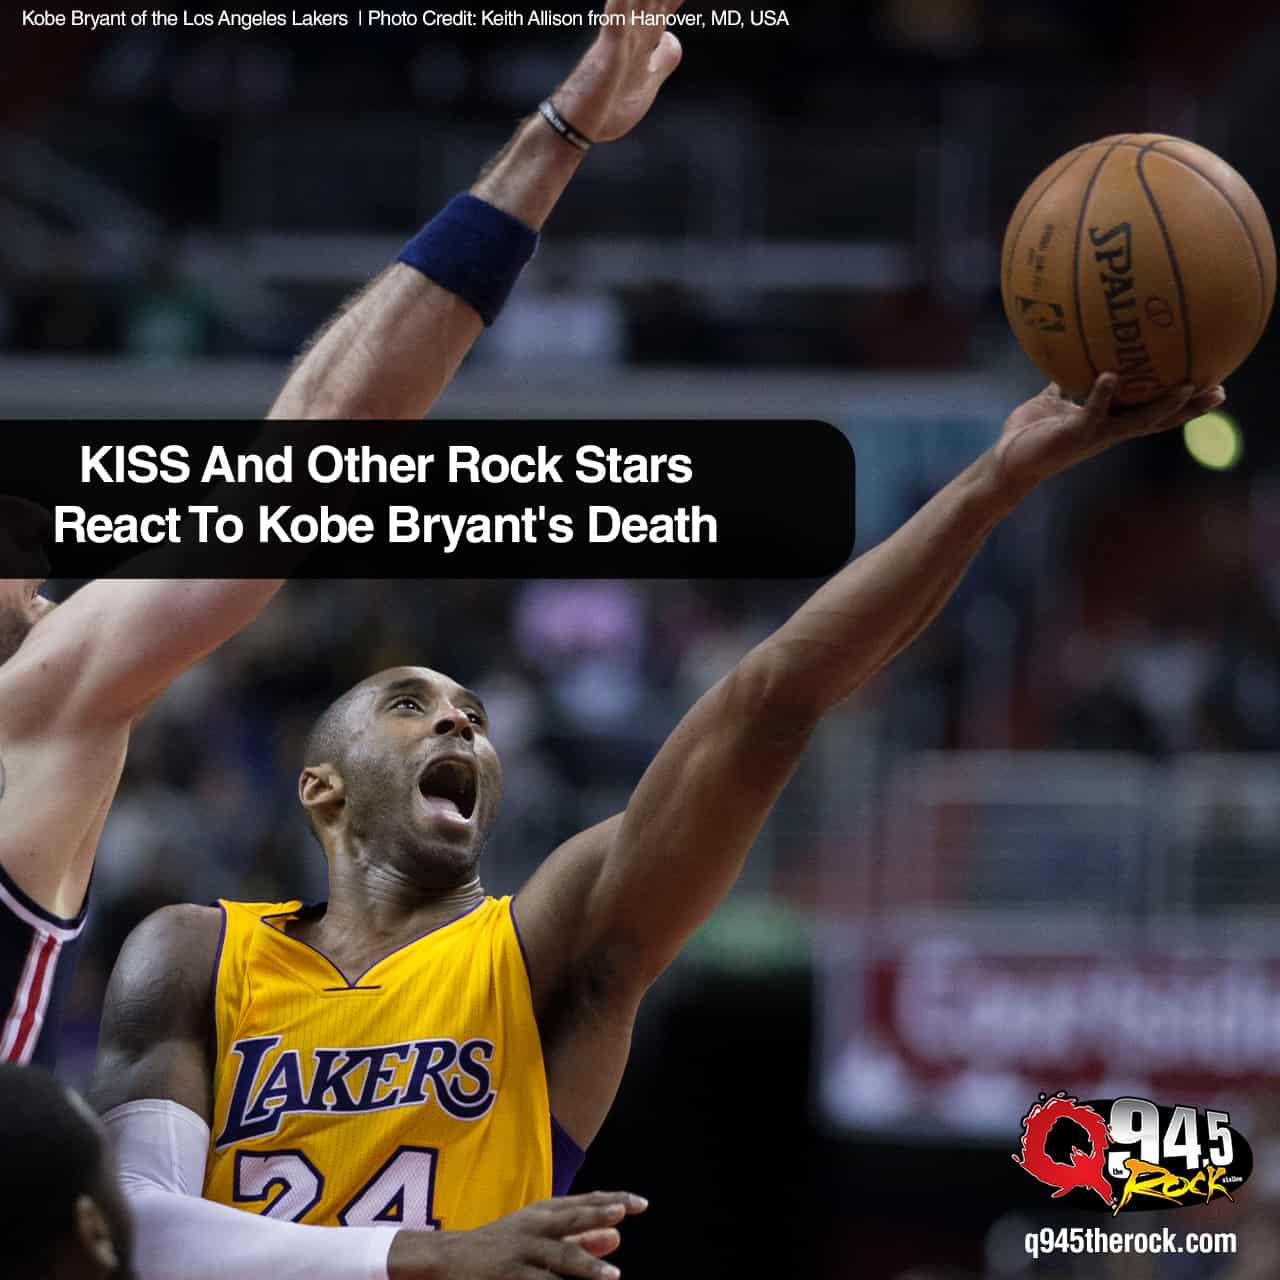 KISS And Other Rock Stars React To Kobe Bryant's Death